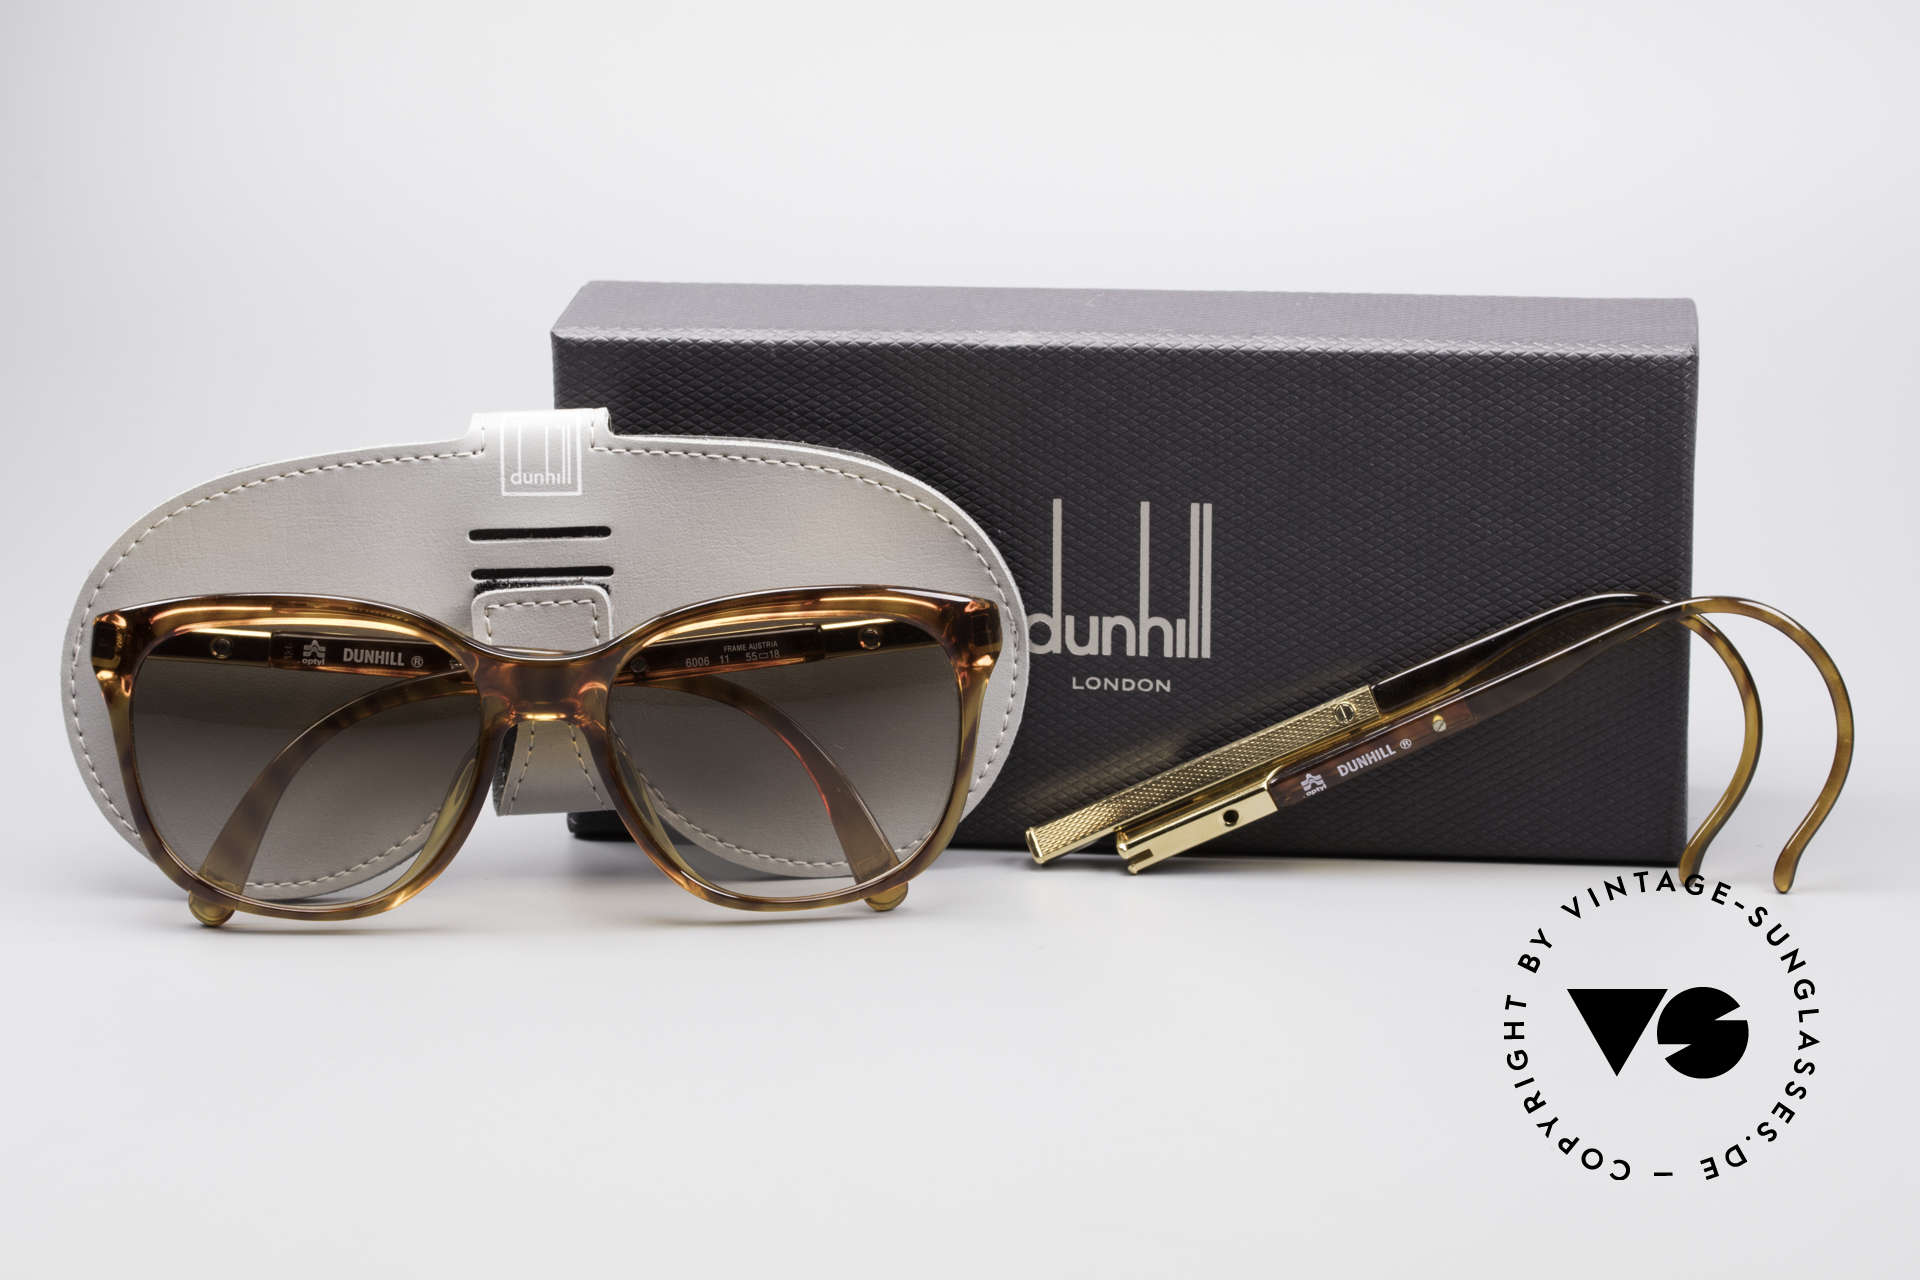 Dunhill 6006 80's Gentlemen's Sunglasses, with additional sport temples (easily changeable), Made for Men